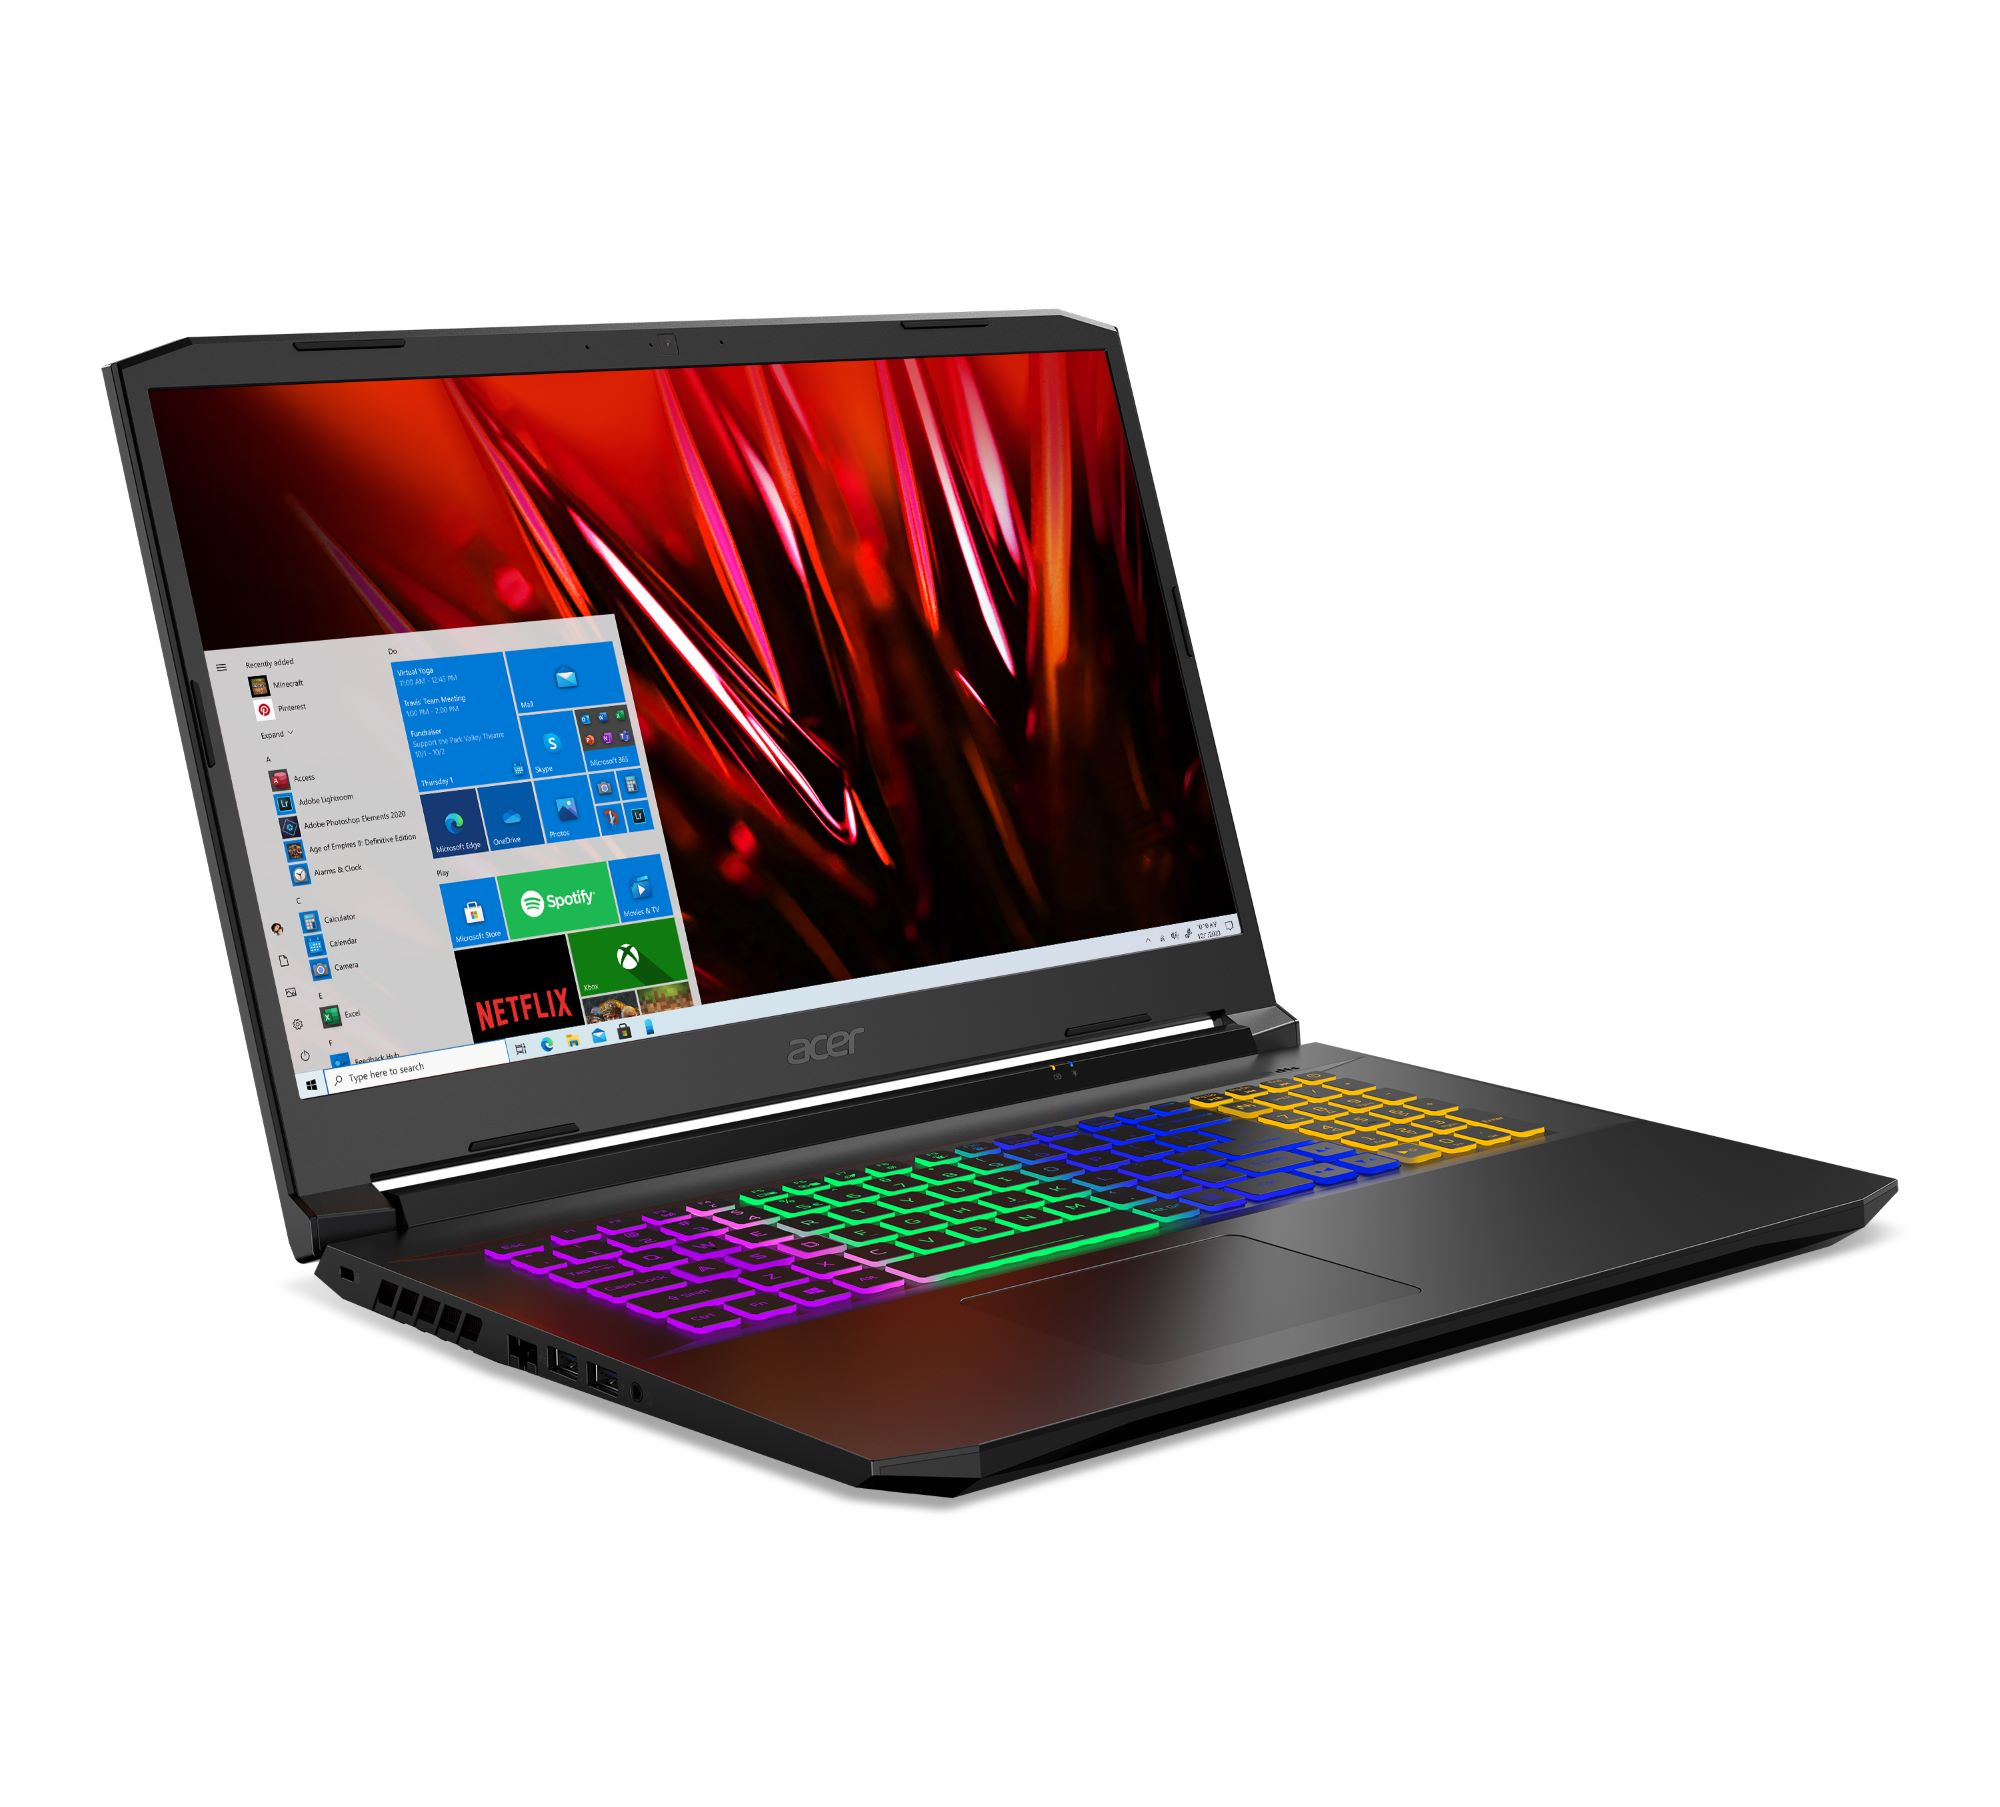 Acer Nitro5 open and facing right, showing colorful keyboard lit up